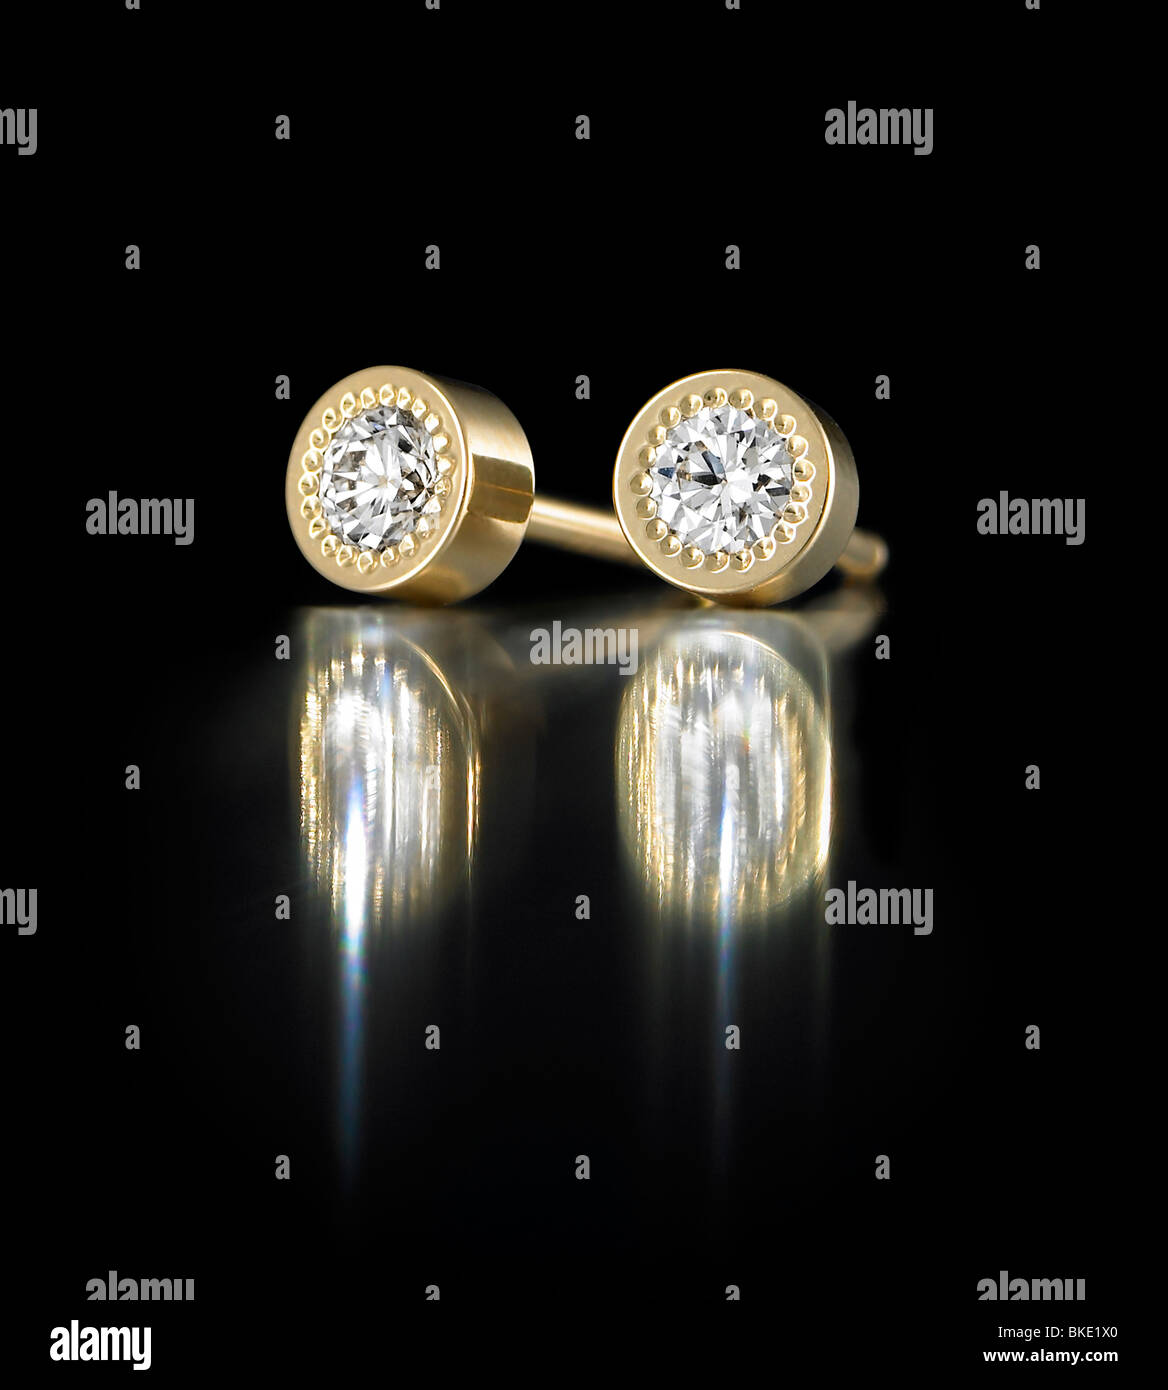 Image result for stud earrings stock photo